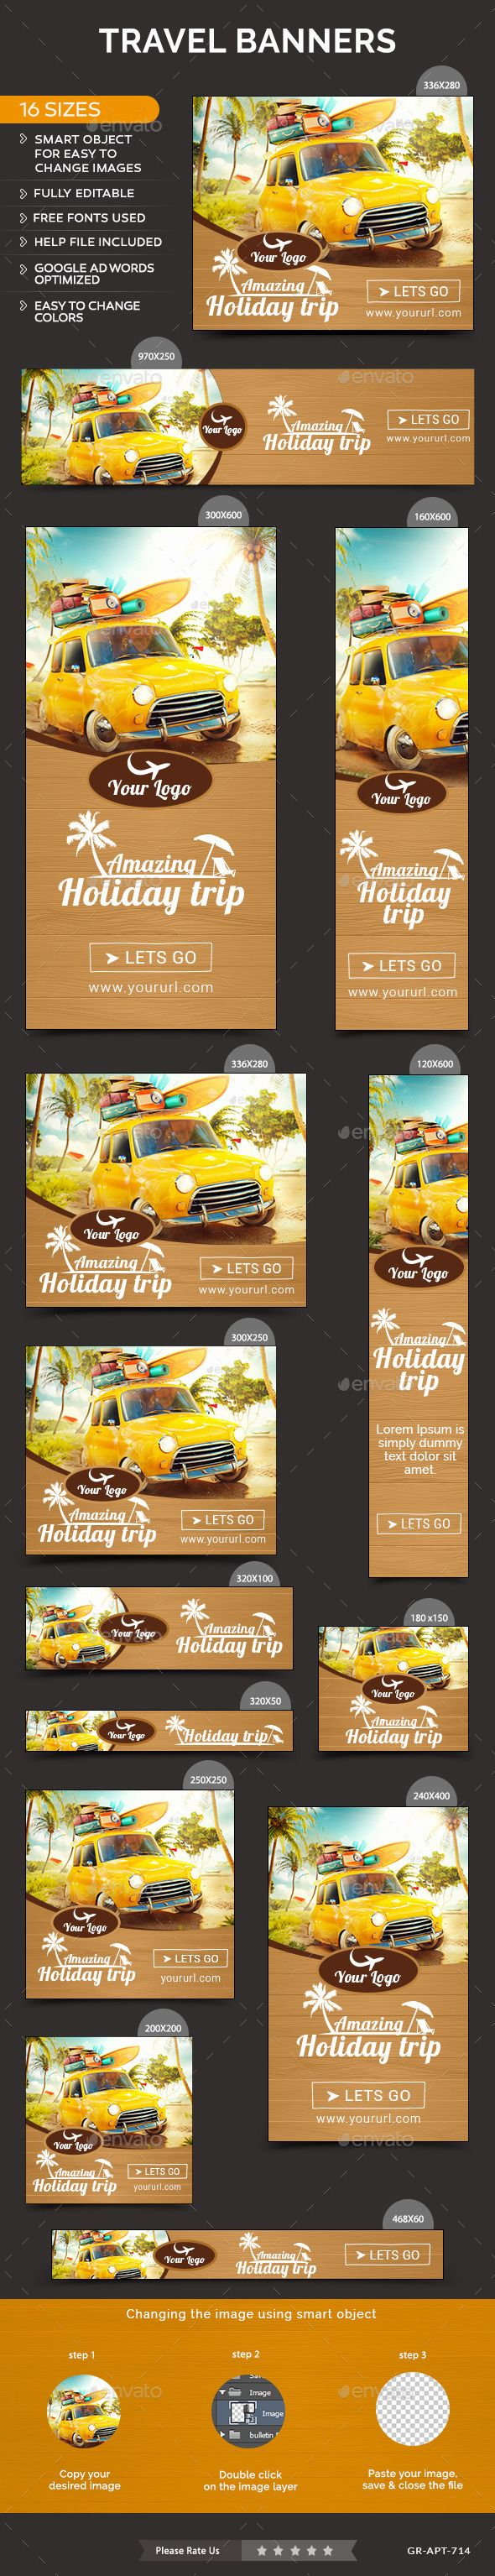 Travel Banners Template #design Download: http://graphicriver.net/item/travel-banners/12062212?ref=ksioks